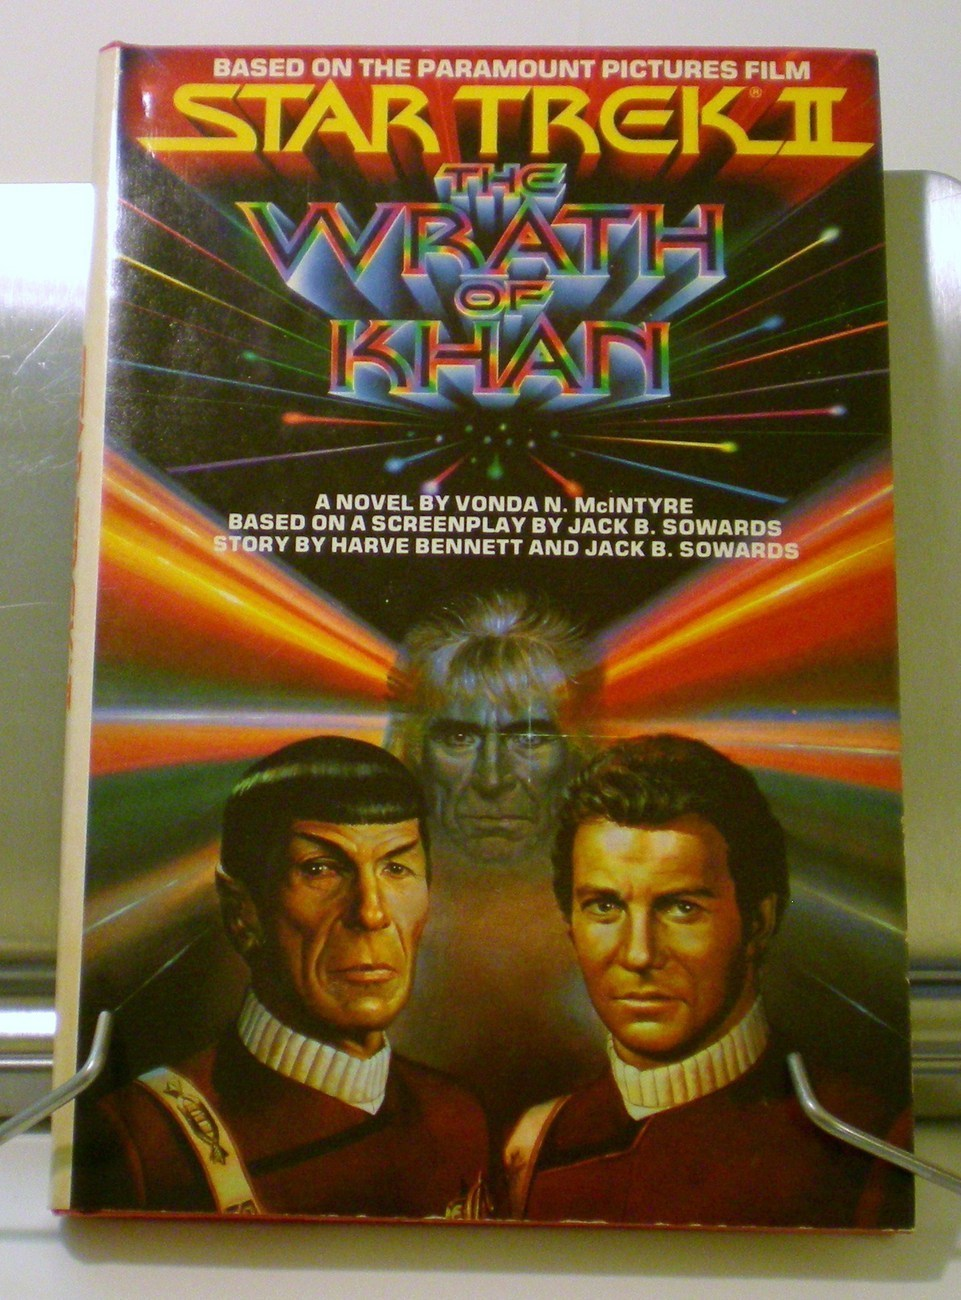 Star Trek II: The Wrath of Khan by Vonda N. McIntyre 1982